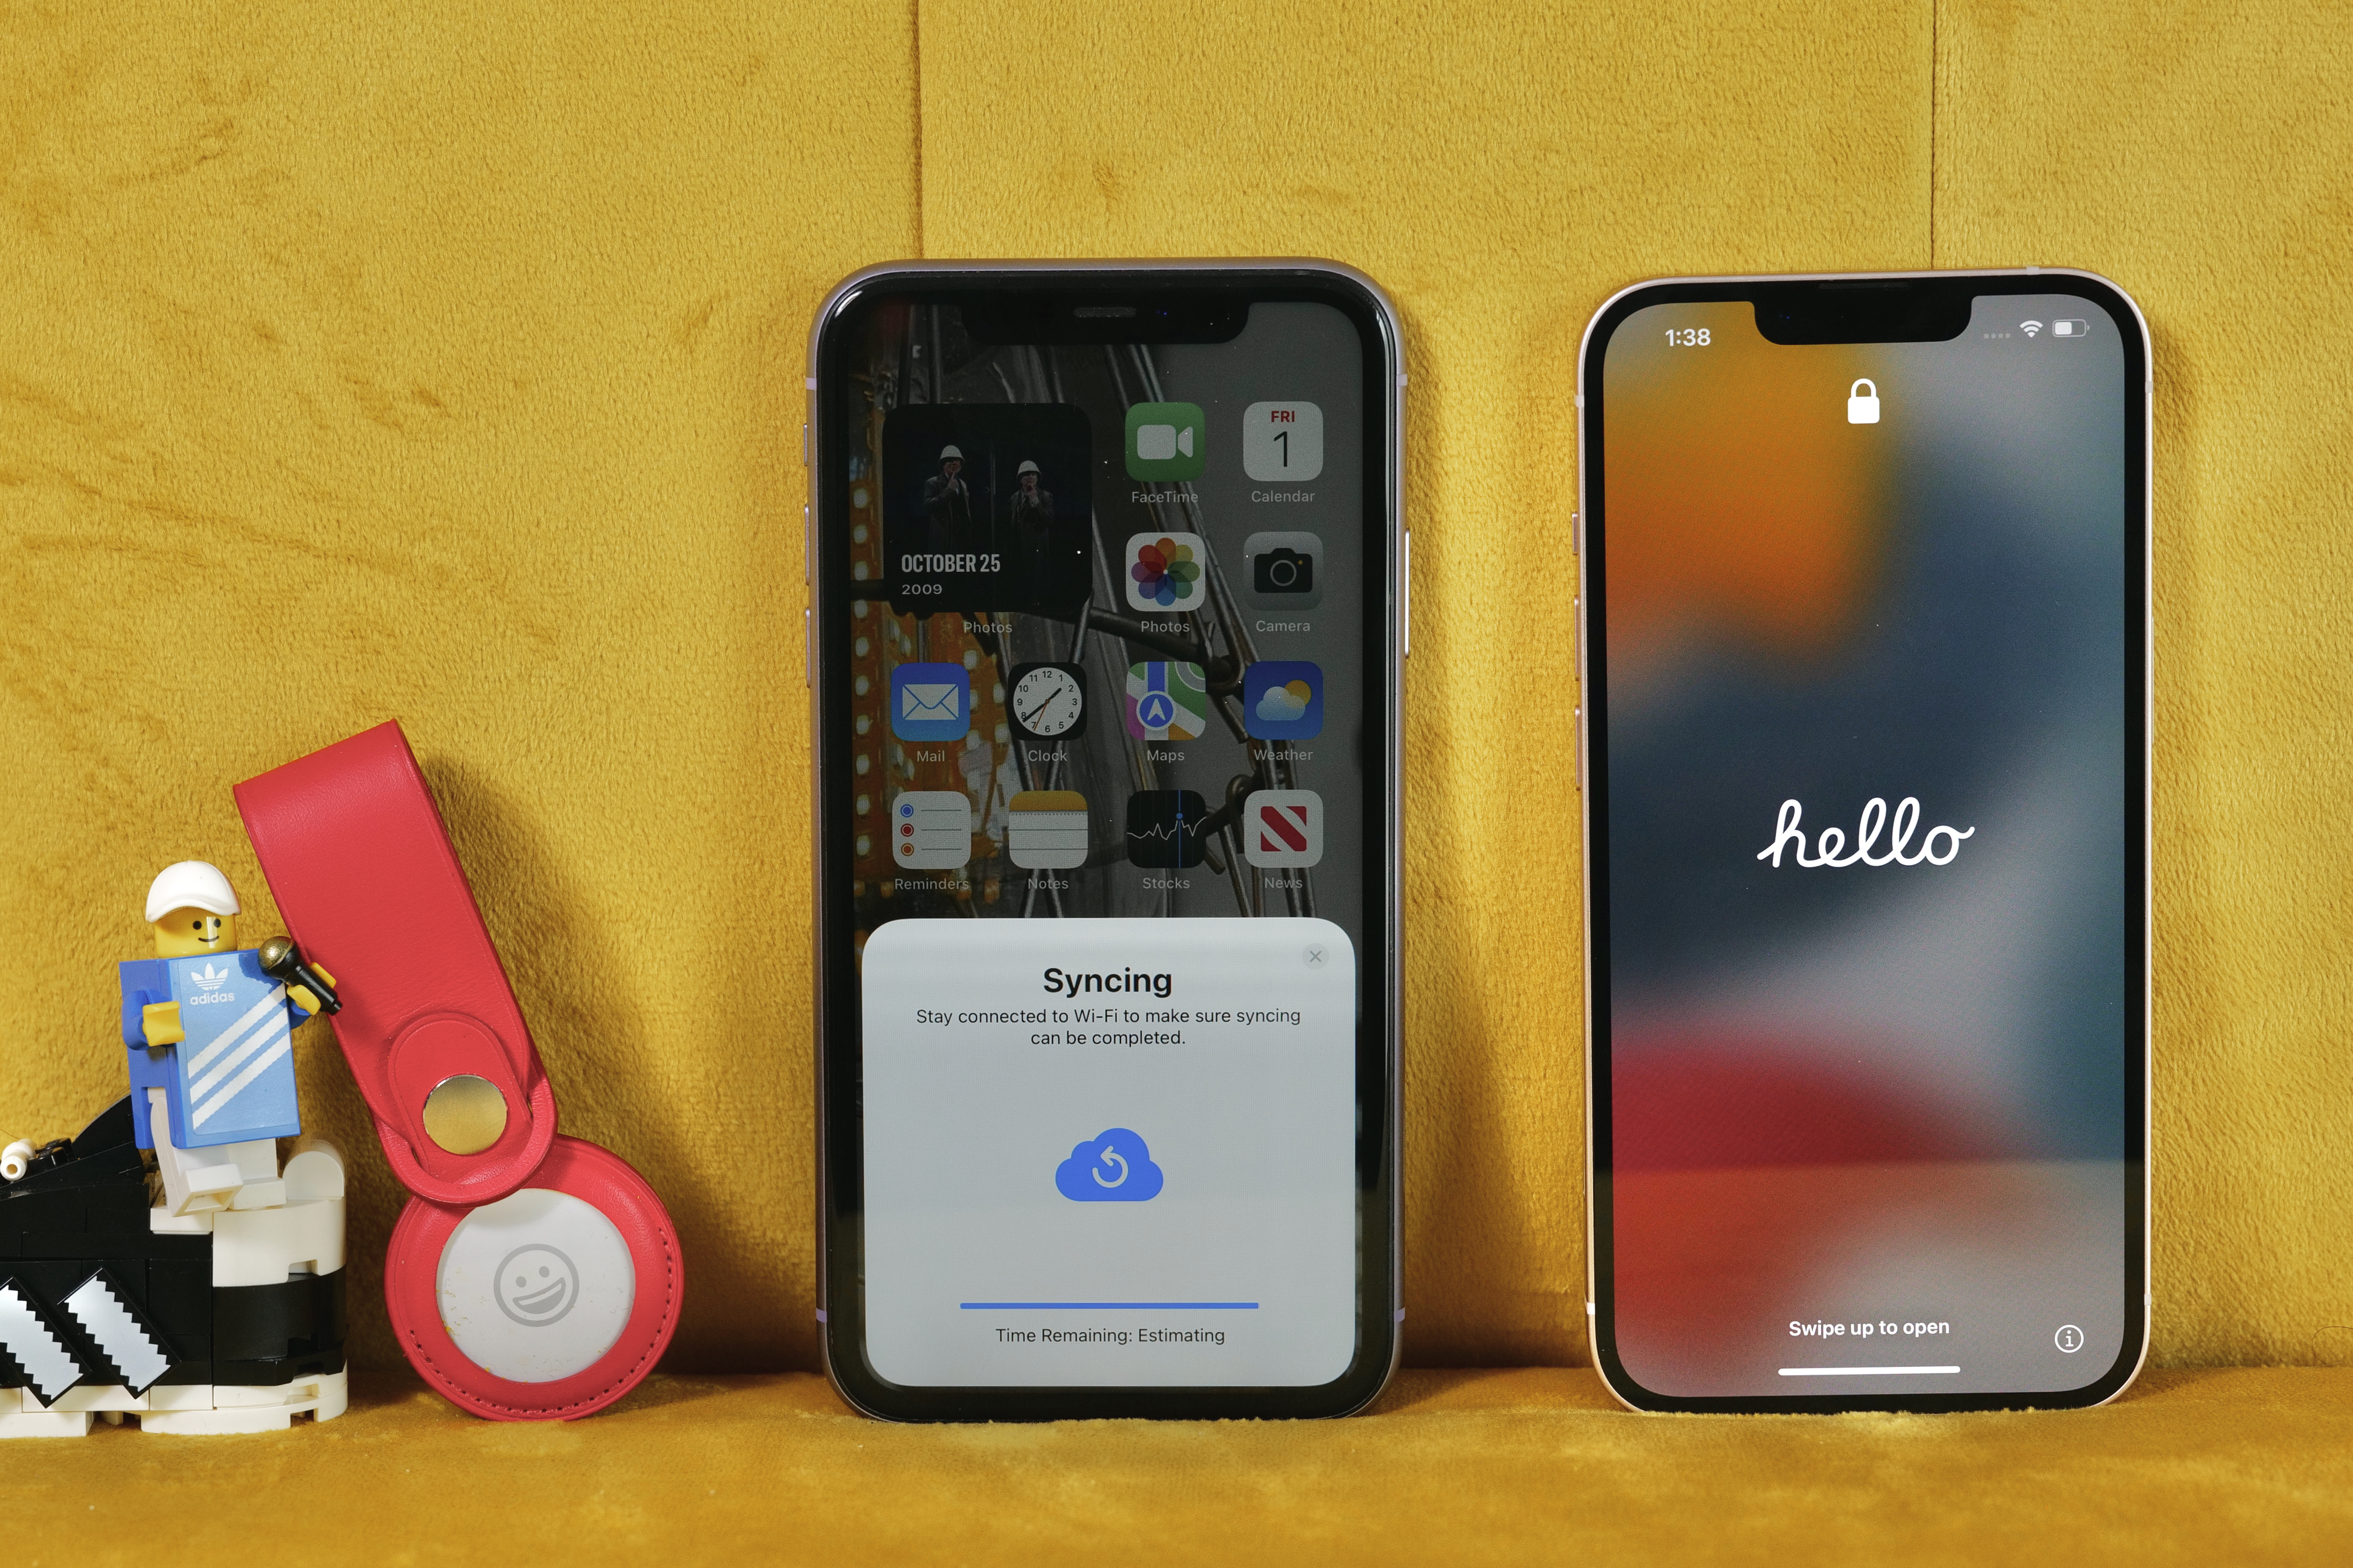 Just bought an iPhone 13? This iOS 15 trick gives you more iCloud storage for free     - CNET